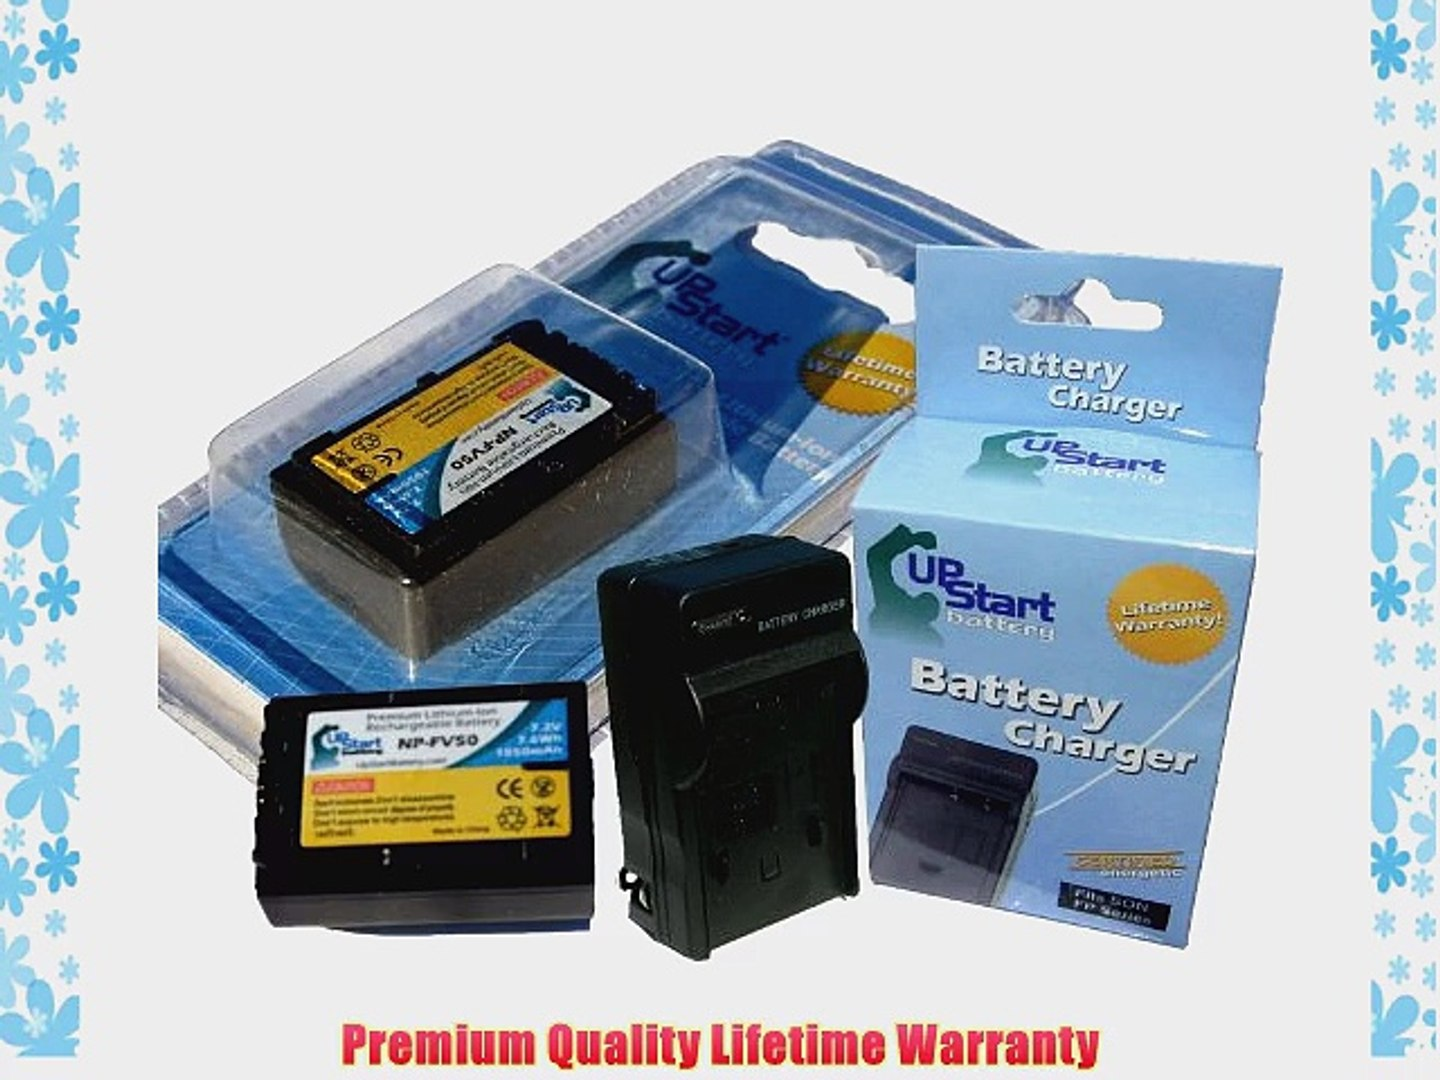 UpStart Battery New - Fully Decoded NP-FV50 Replacement 2 Batteries Charger Kit for Sony Camcorders